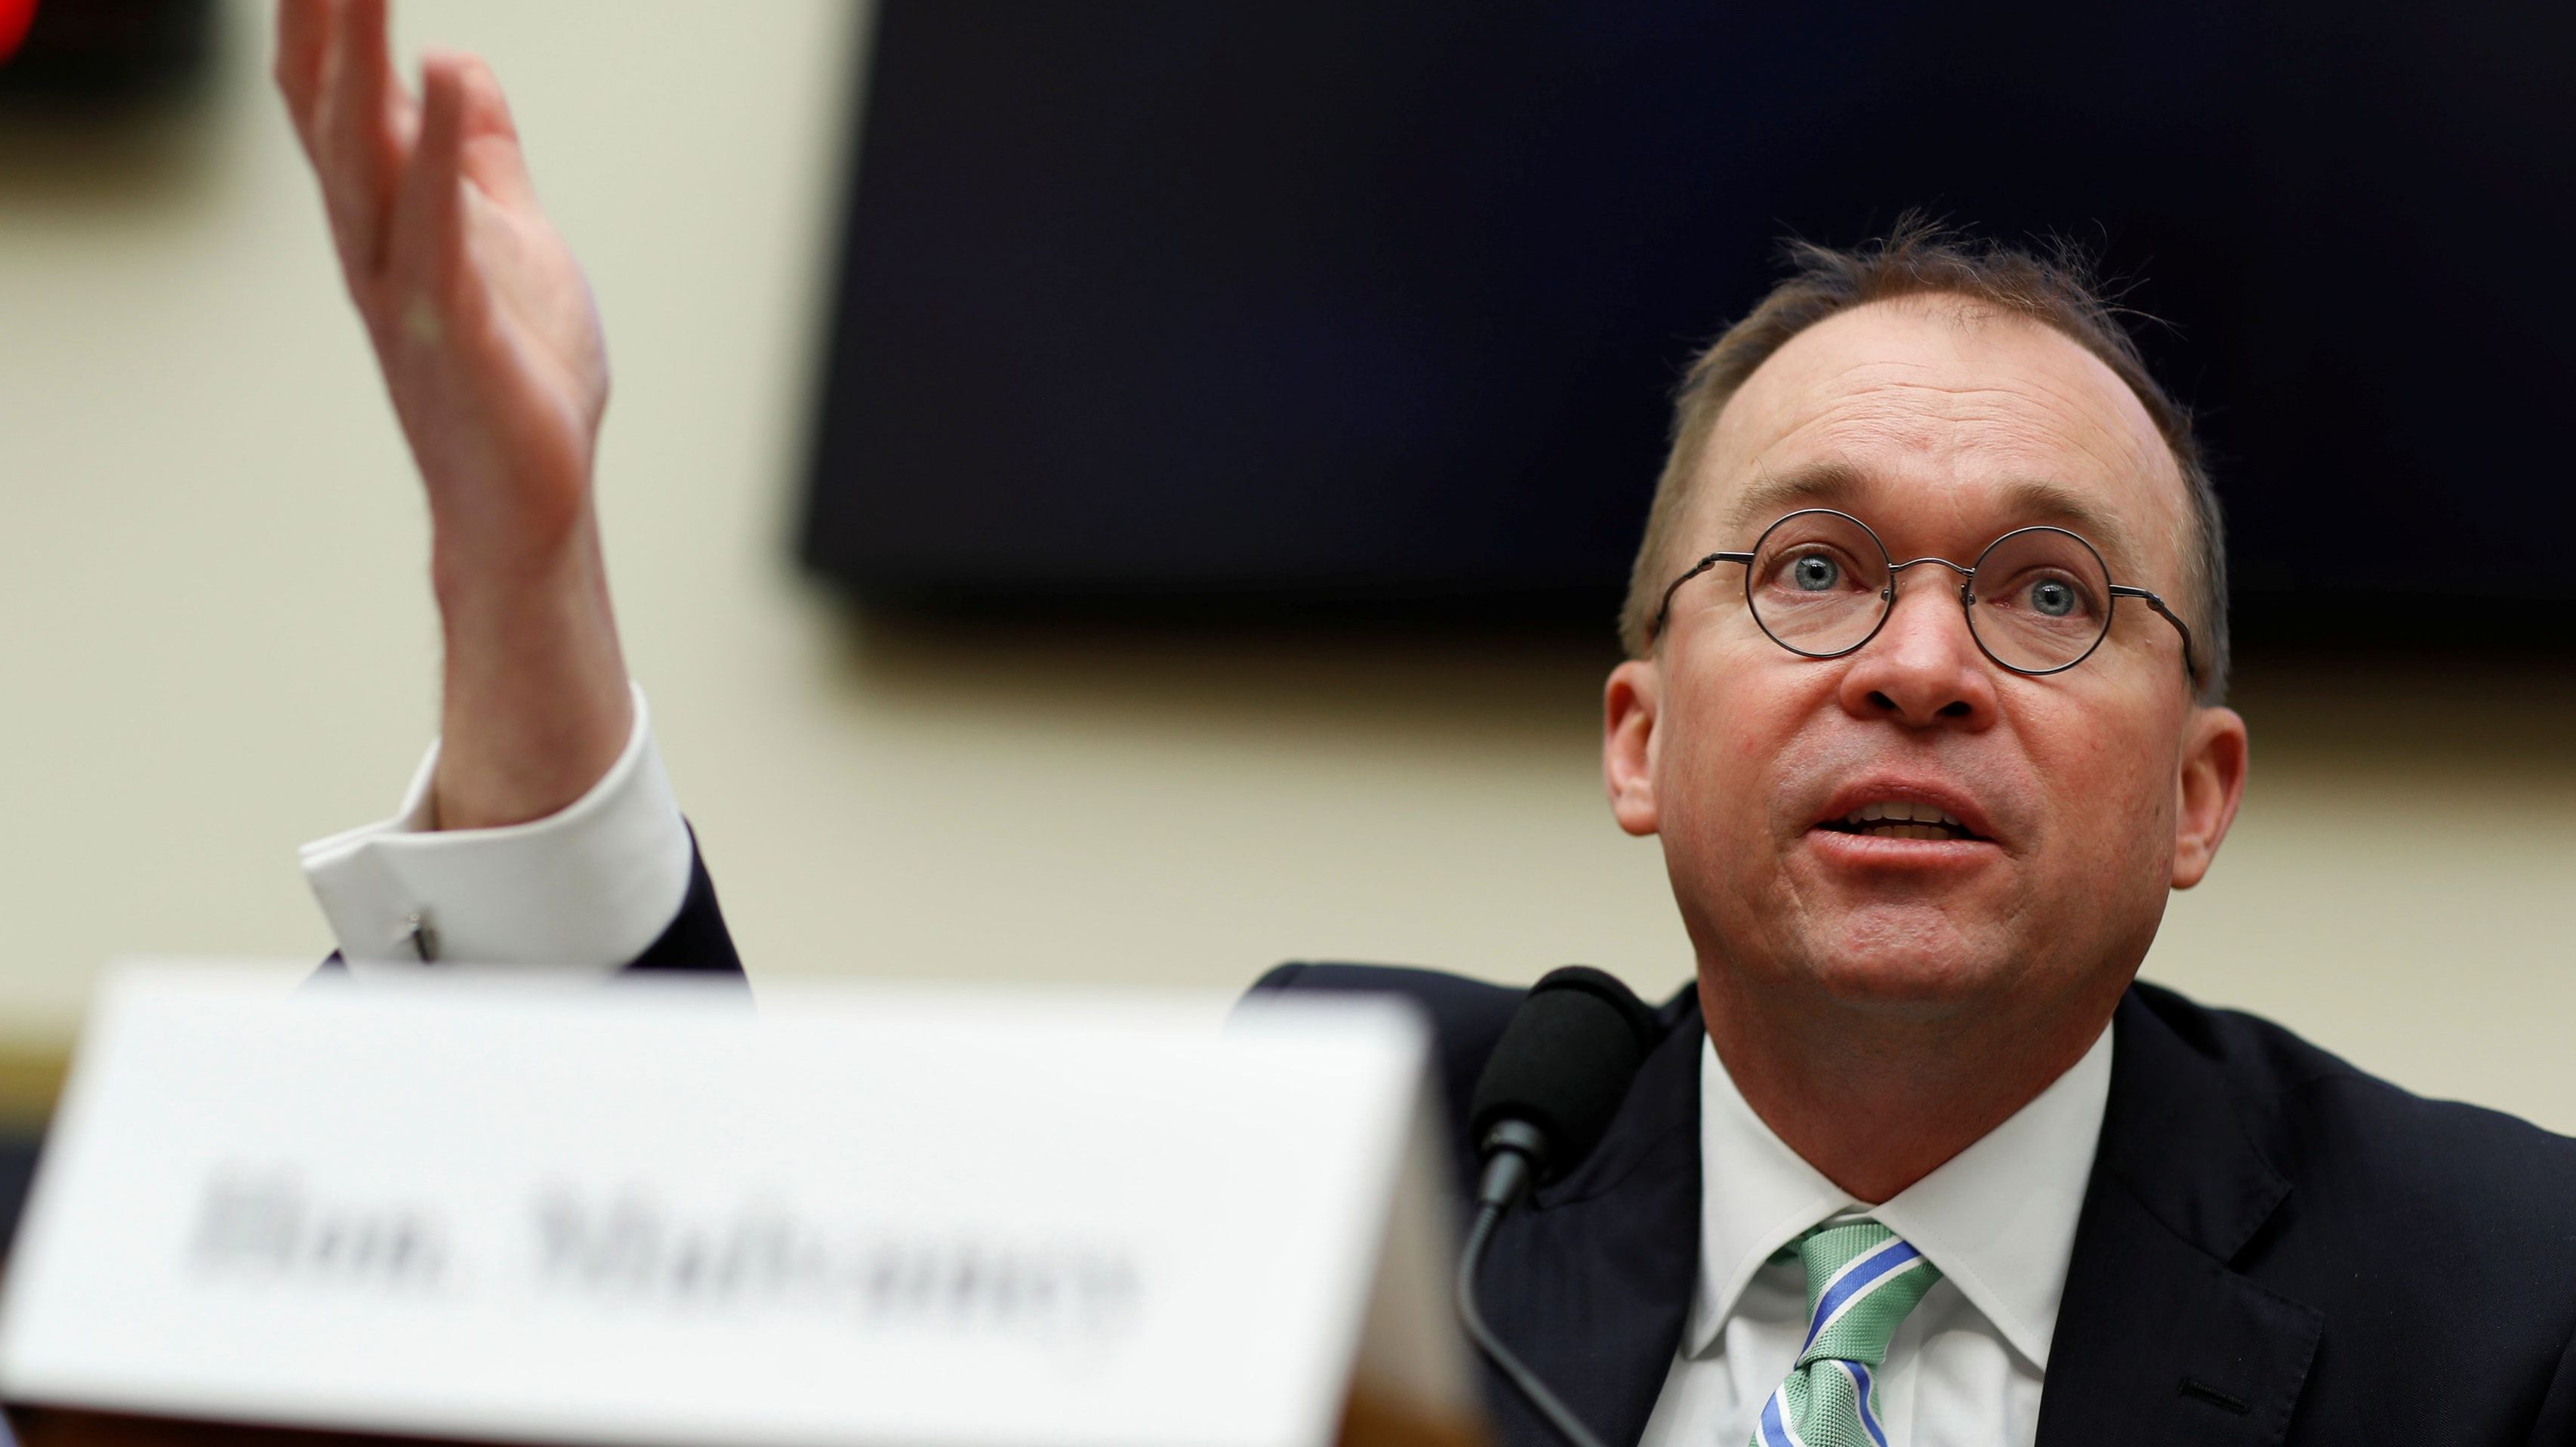 Office of Management and Budget Director Mick Mulvaney, acting CFPB director, testifies before a House Financial Services Committee hearing on the Consumer Financial Protection Bureau's (CFPB) semi-annual report to Congress on Capitol Hill in Washington, U.S., April 11, 2018. REUTERS/Aaron P. Bernstein - RC18329523D0